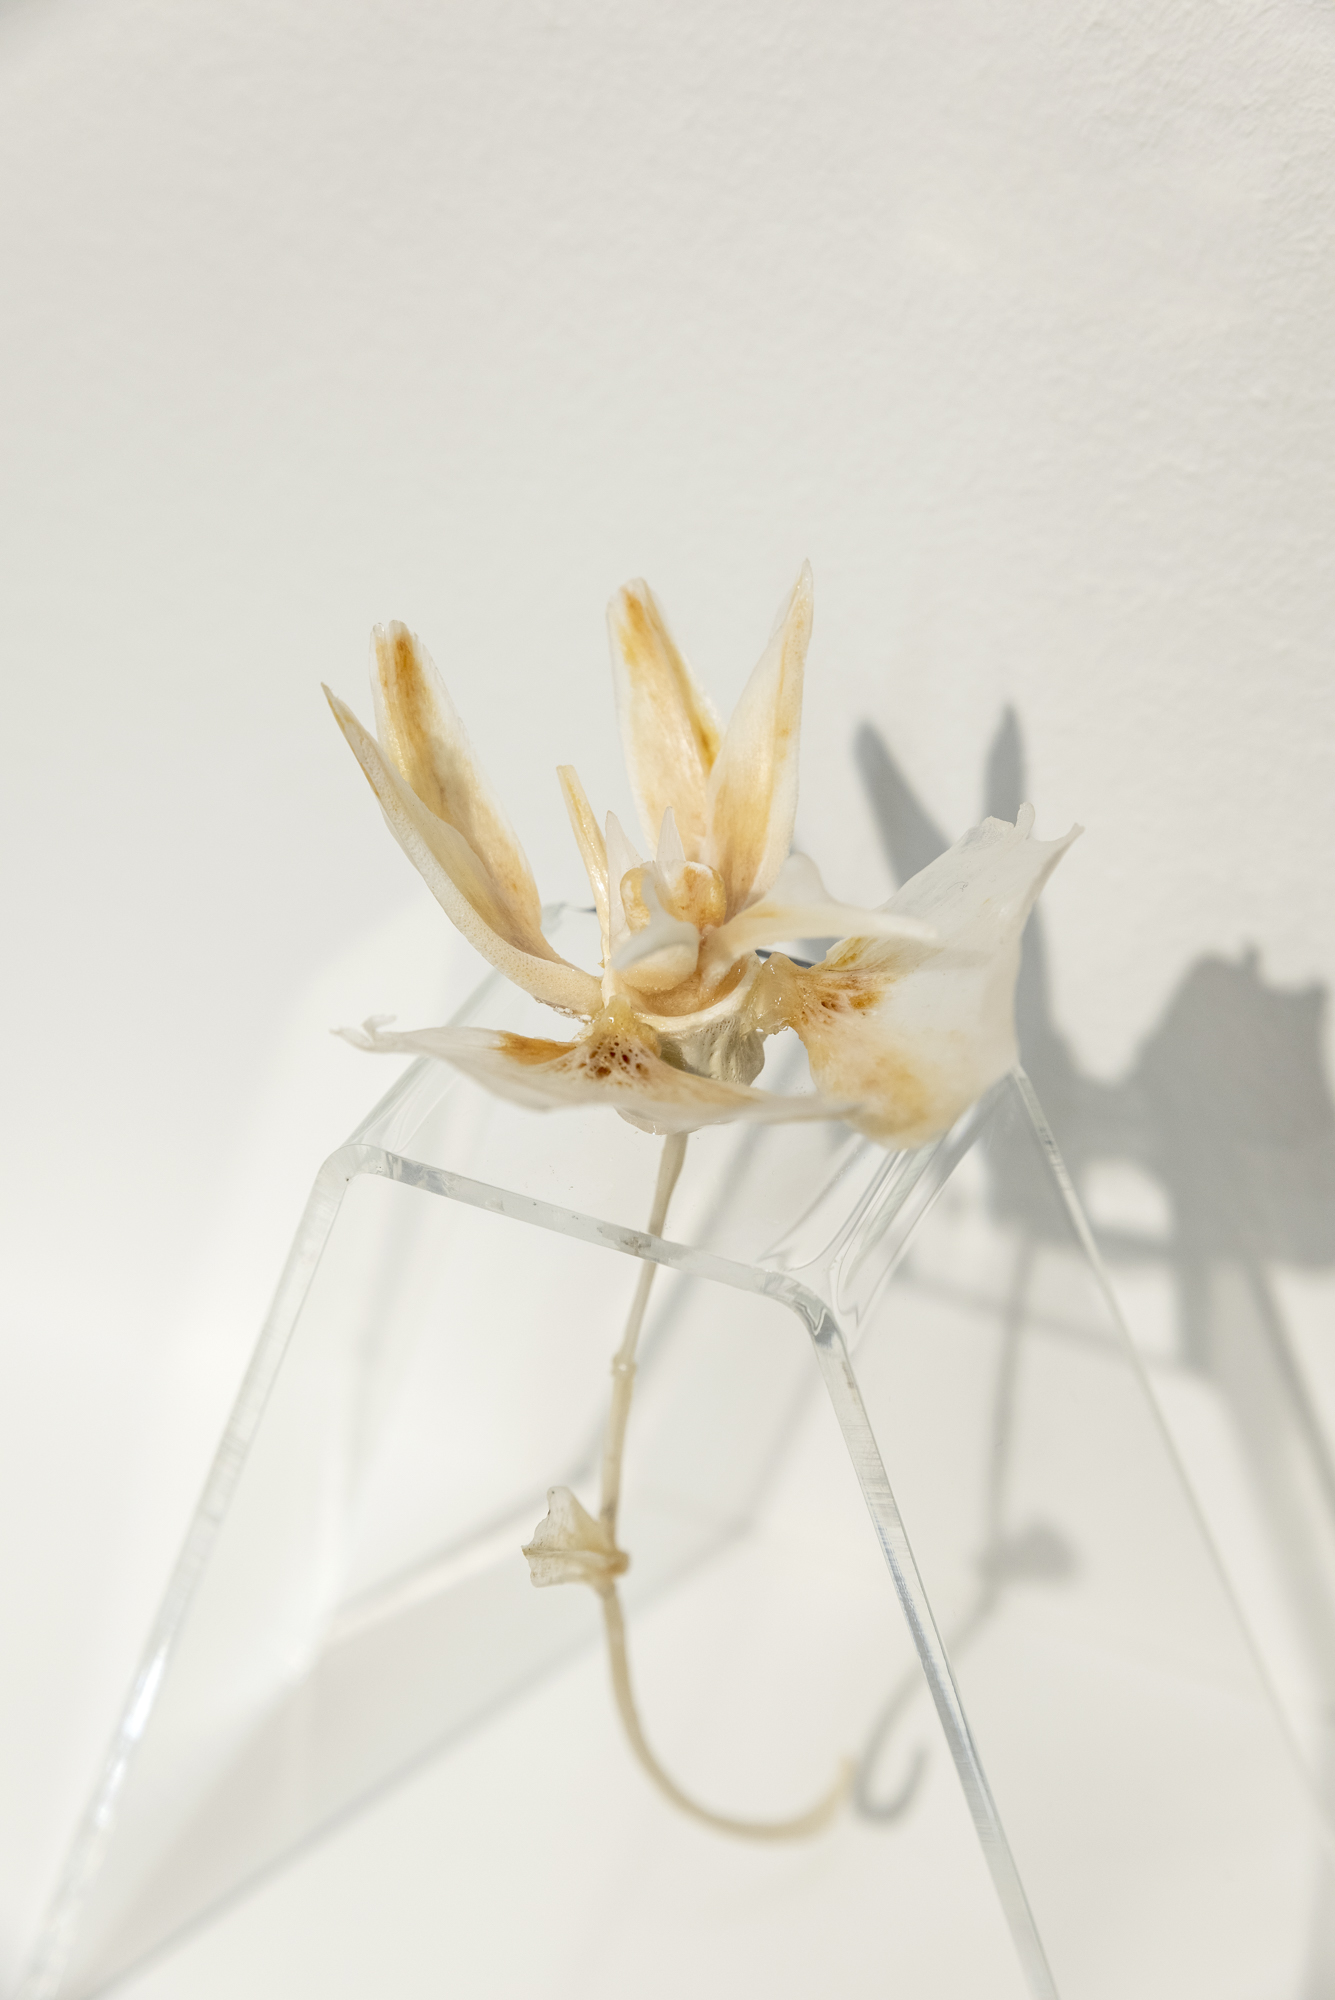 The Orchid , 2010 Nina Liebenberg Fishbones from a variety of species